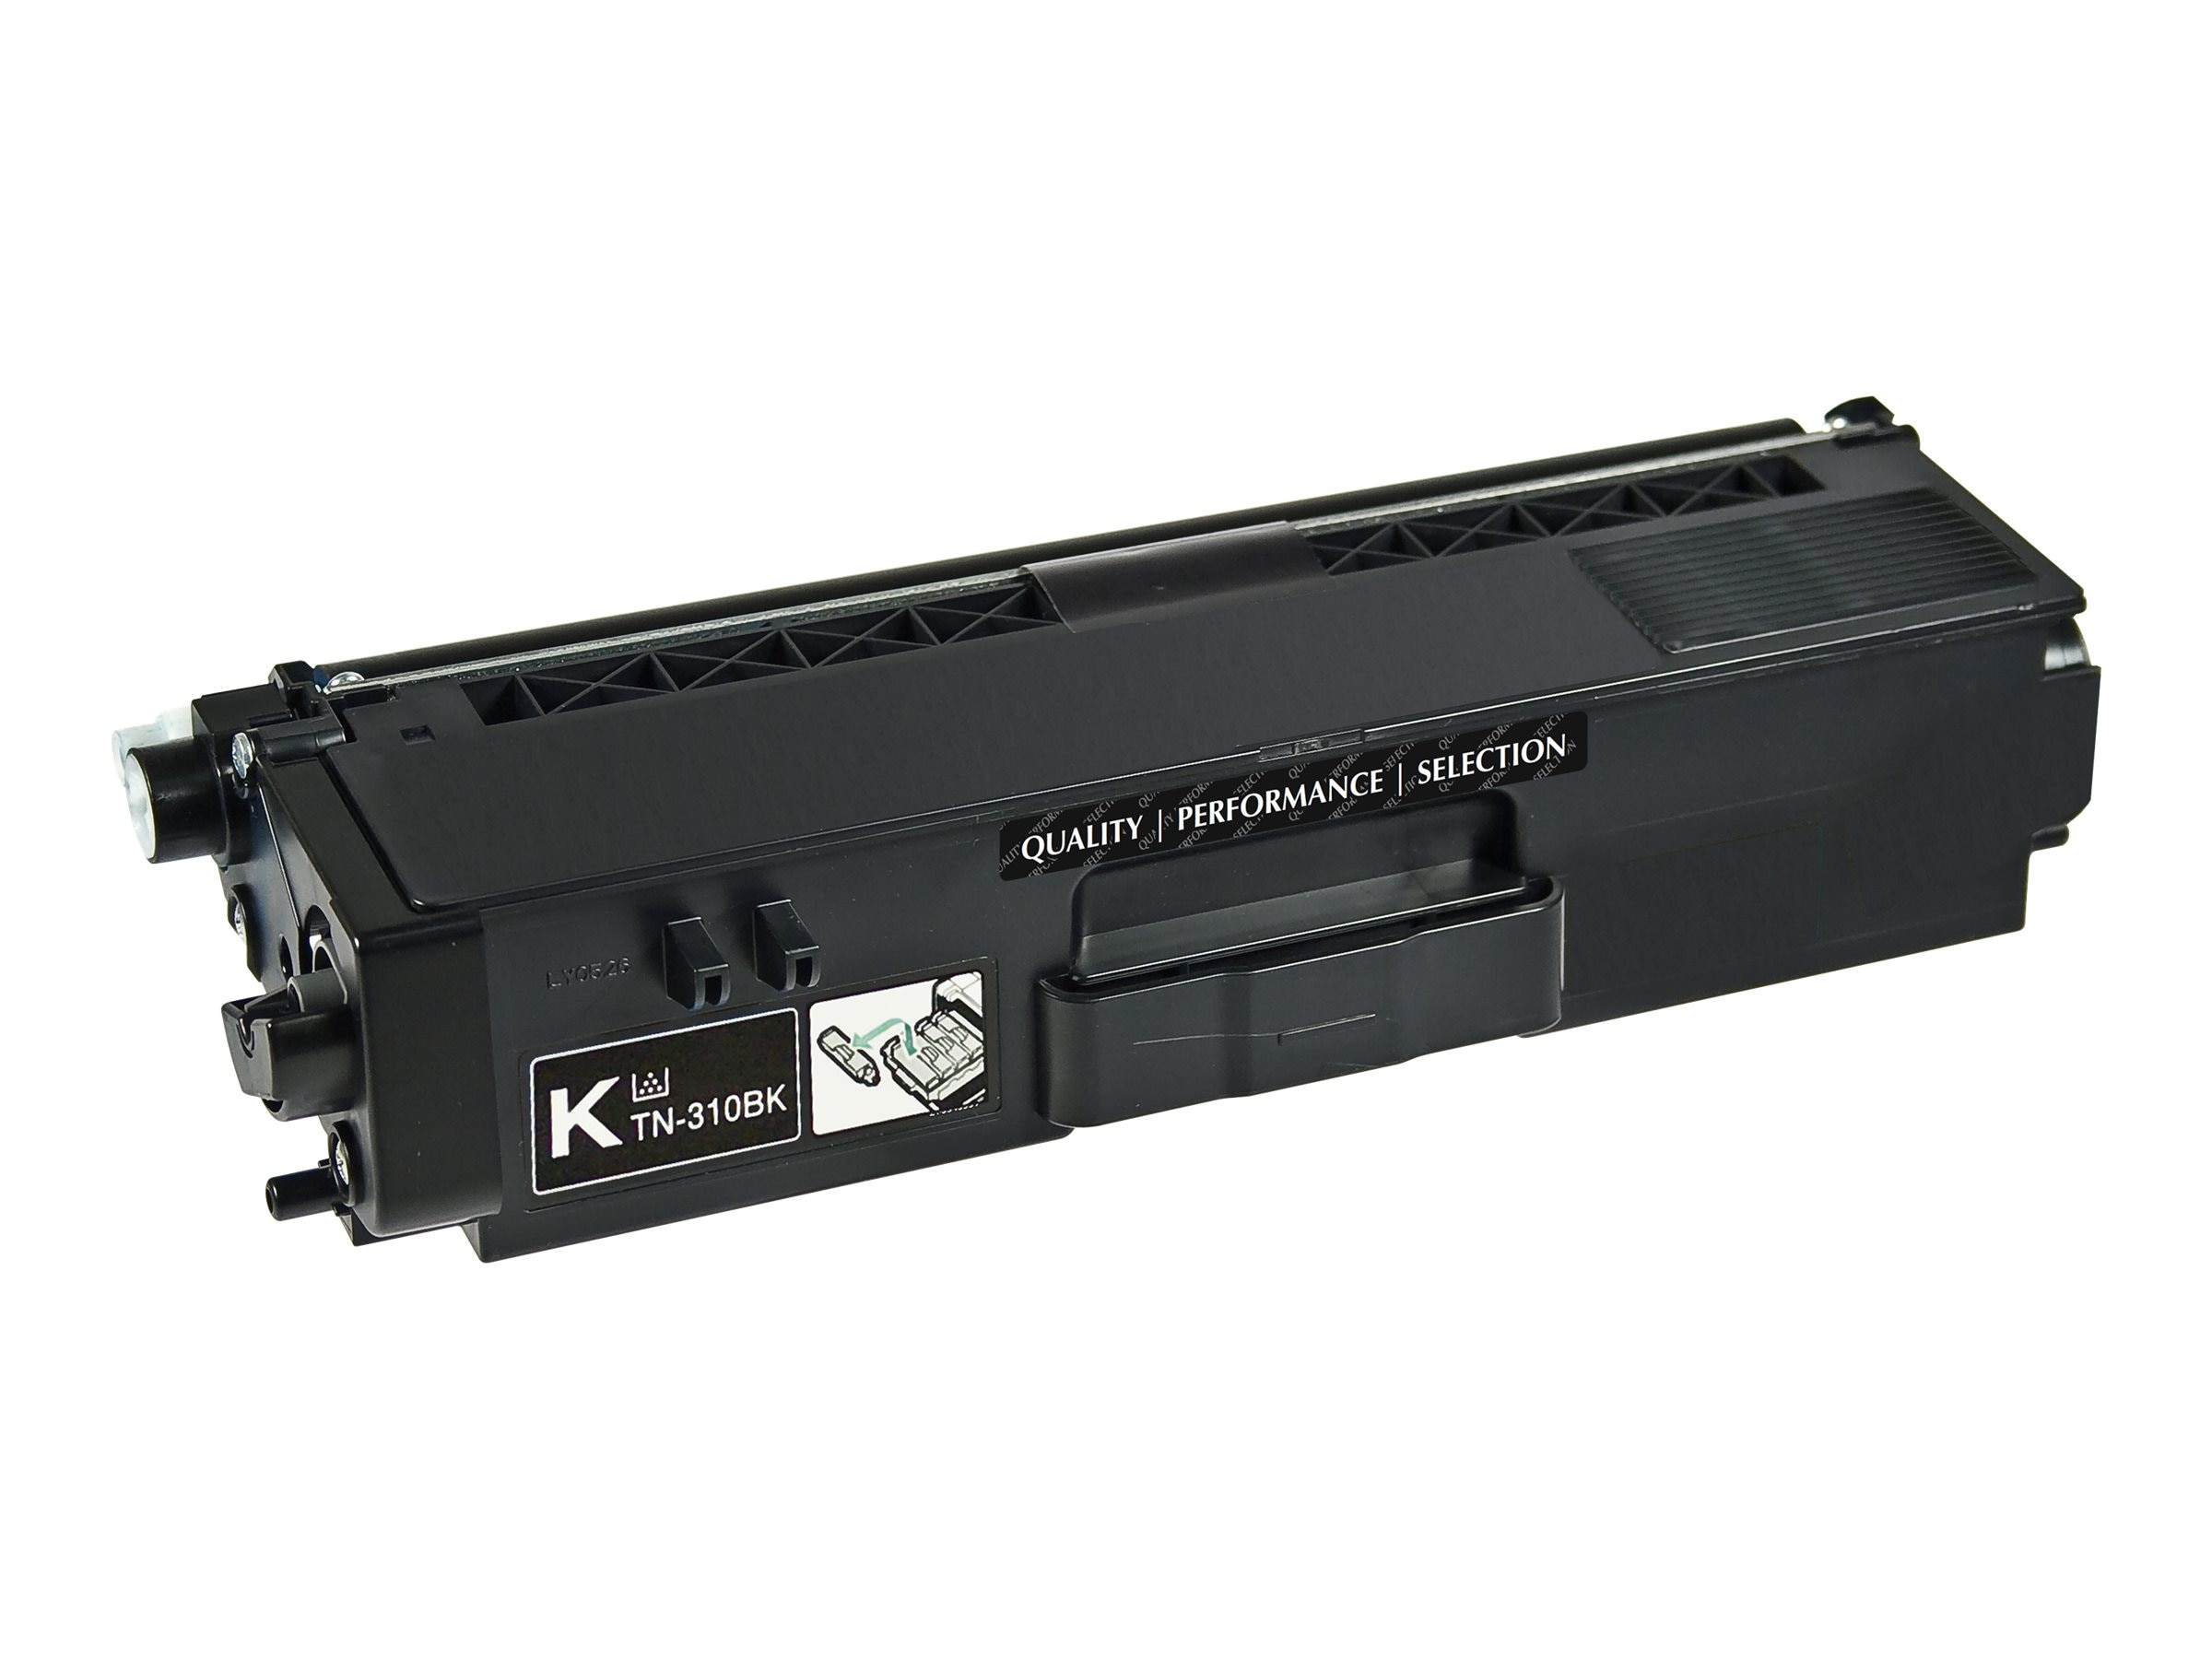 V7 TN315BK Black High Yield Toner Cartridge for Brother, V7TN315B